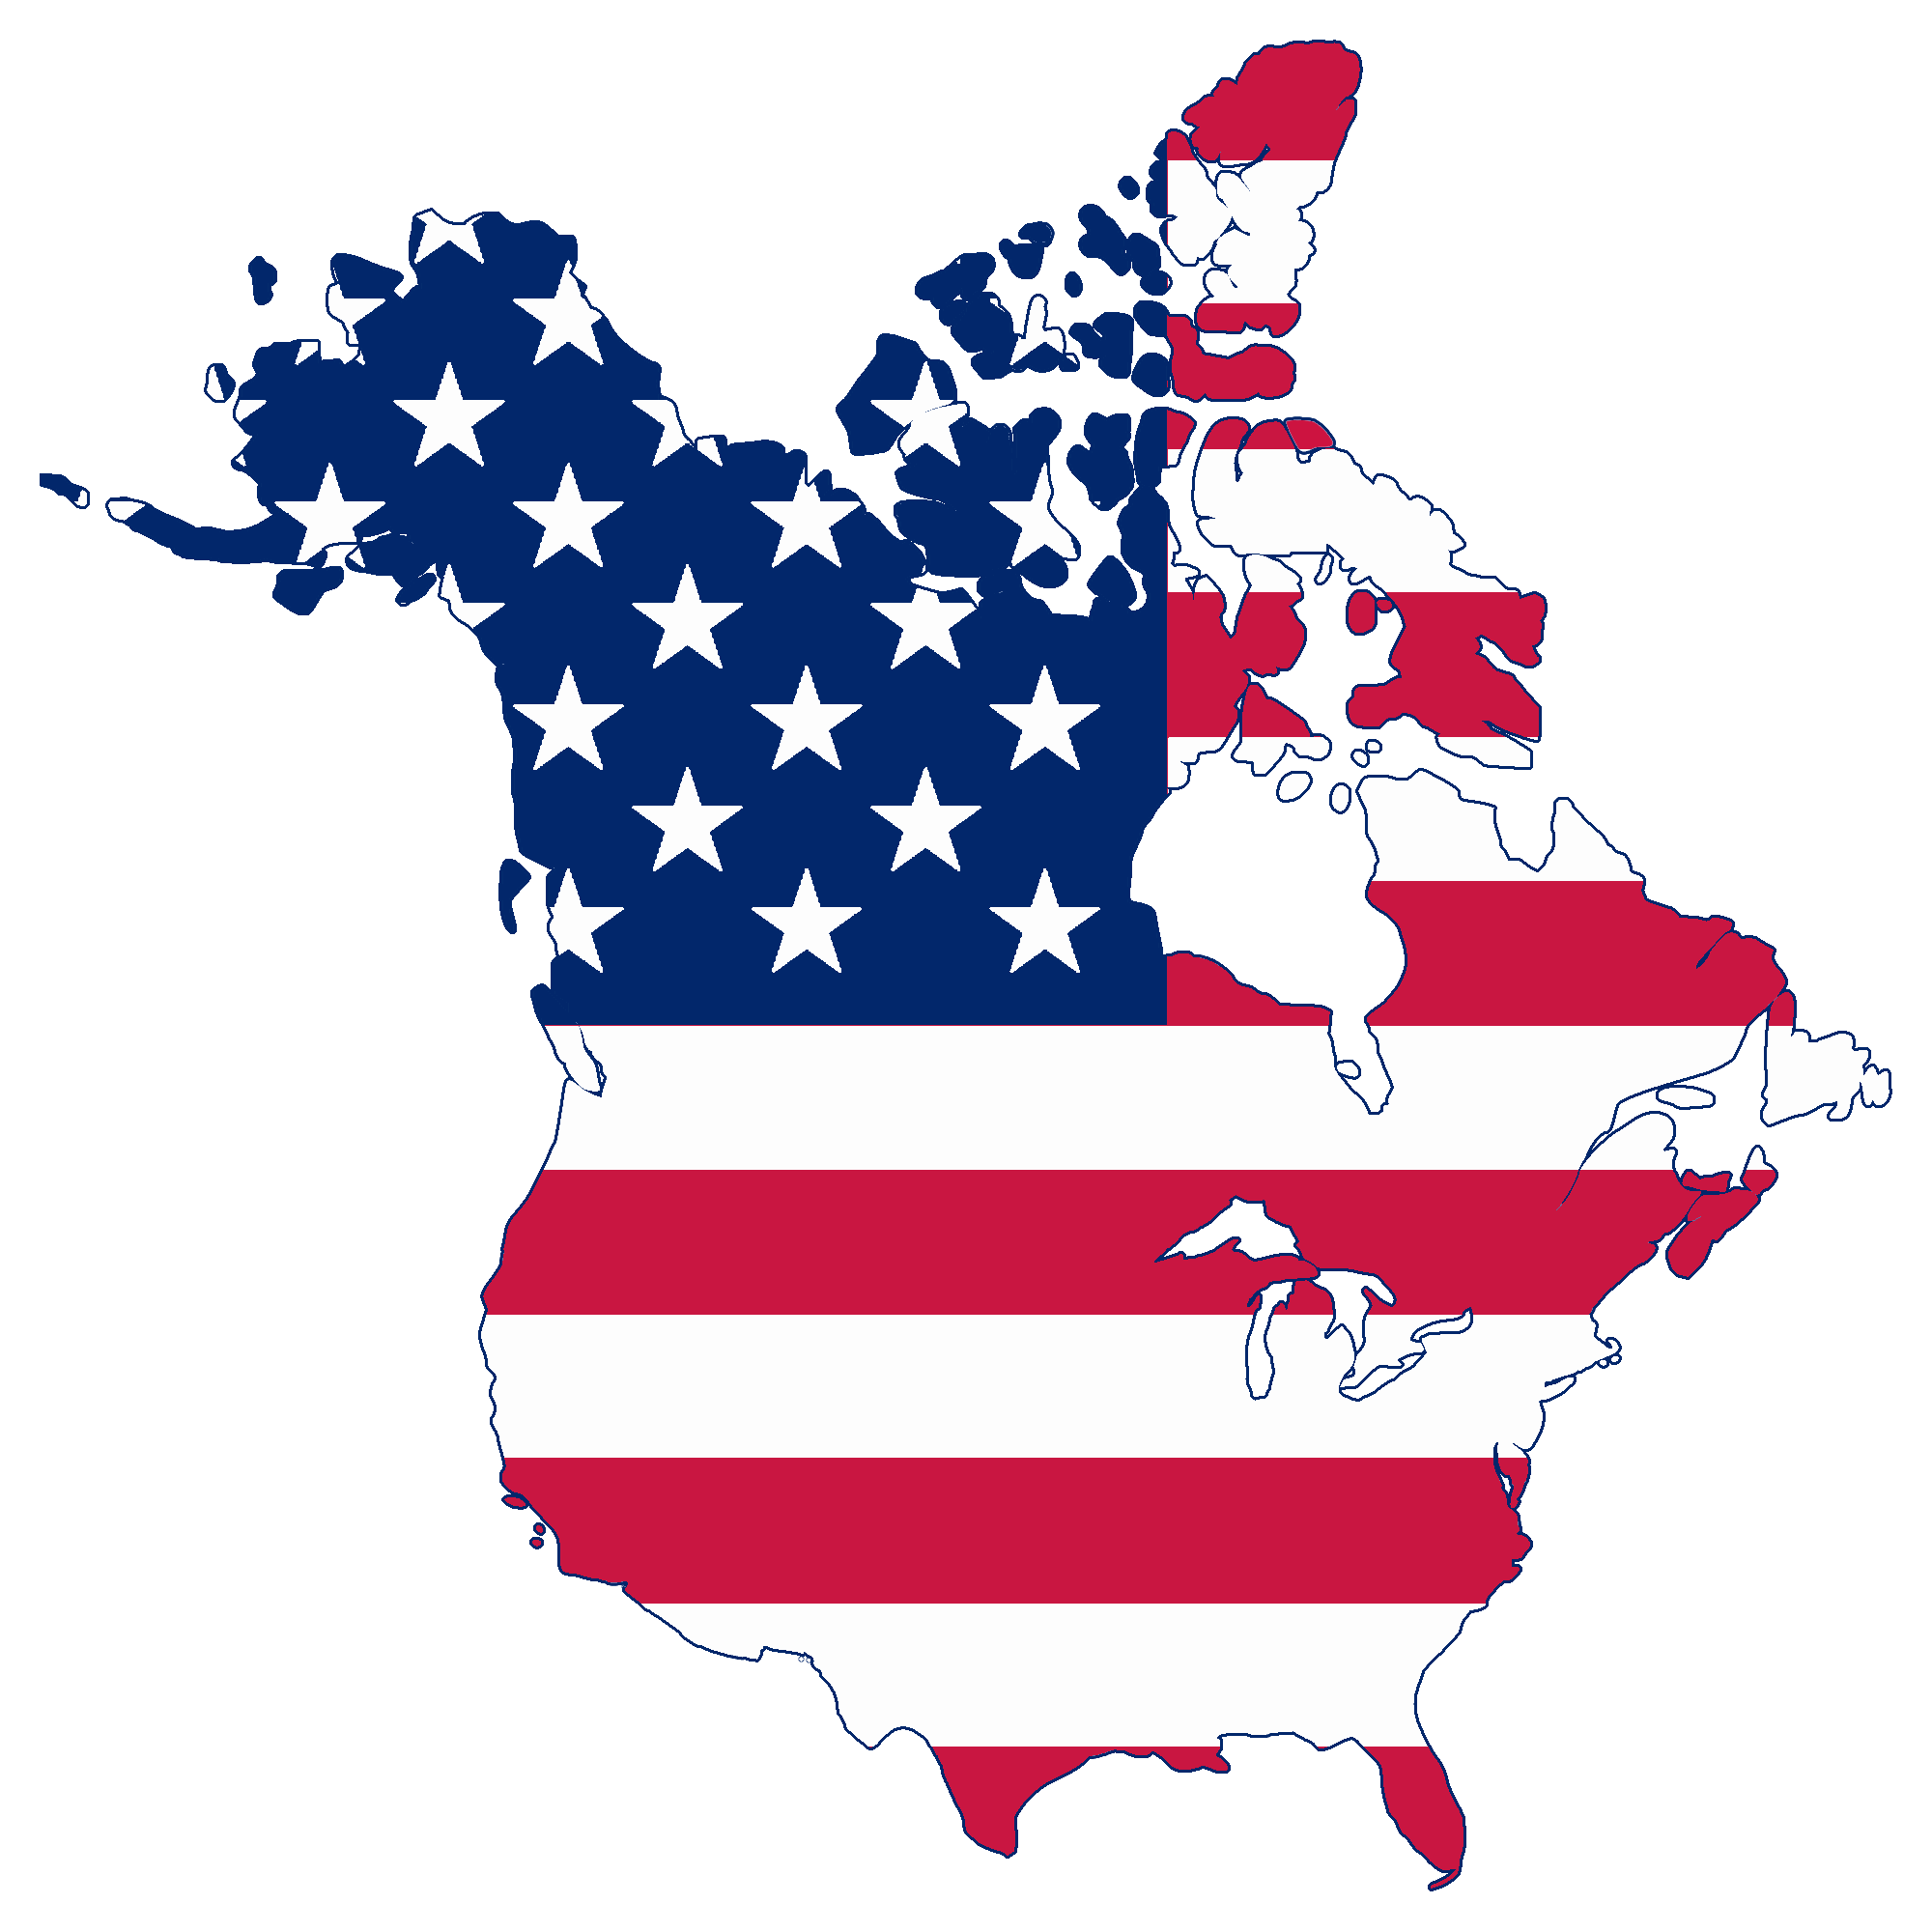 A Merger Between The United States And Canada Might Not Be As Crazy It Sounds In Fact Due To Their Unparalleled Cultural Political